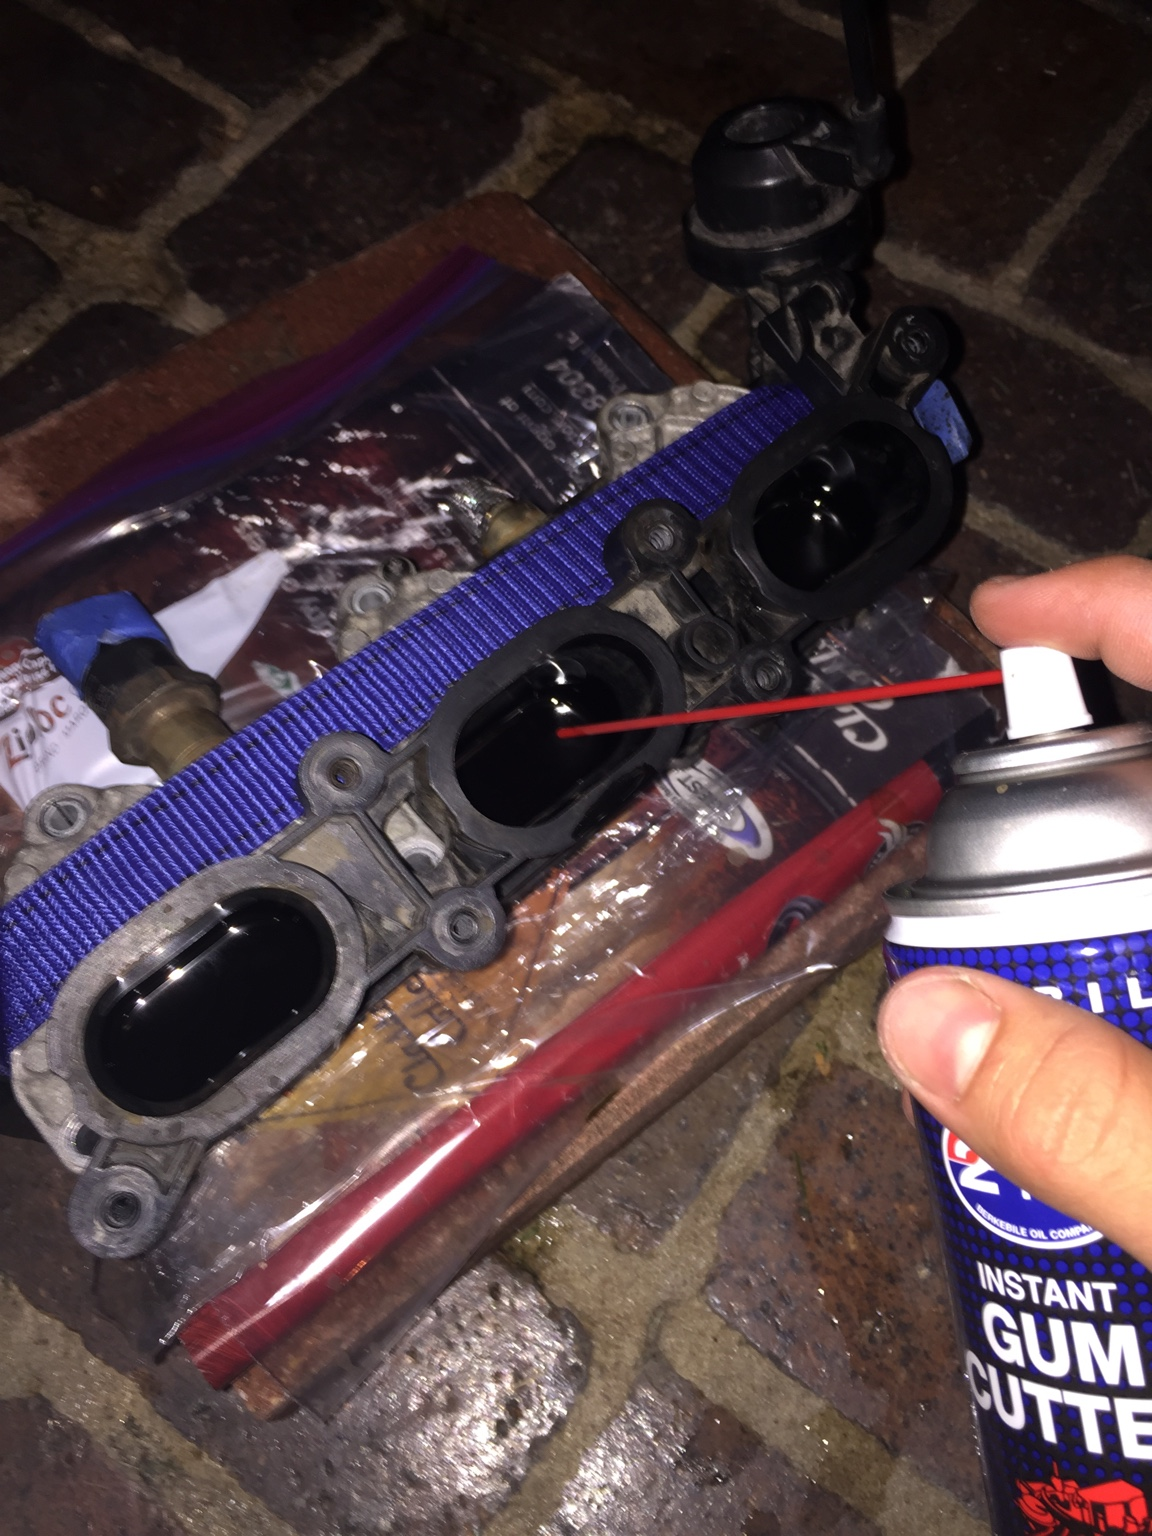 Bought A B7 A3 32 Fsi Tearing It Down For Cleaning But Have Quattroworldcom Forums Wiring To Your Coil Pack Is Likely Borked The Actual I Recommend Strapping Lower Intake Runners Flat Surface And Fill Ports With Gum Cutter Let Them Soak Like So